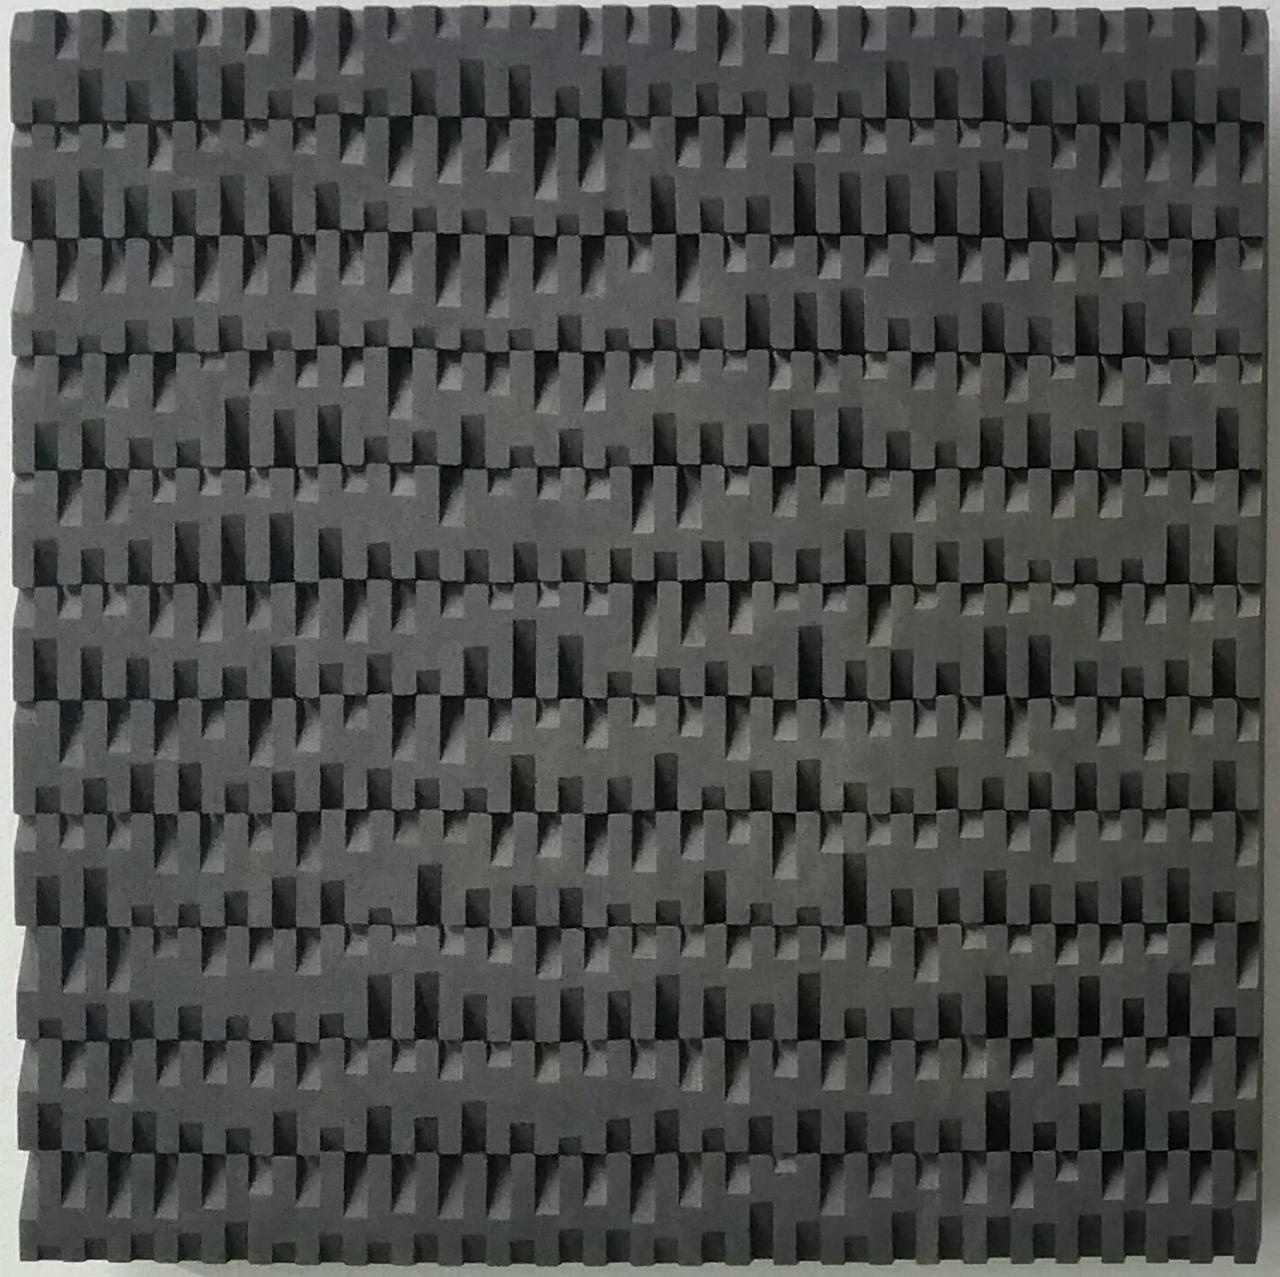 Entrelacements I - contemporary modern geometric sculpture painting relief